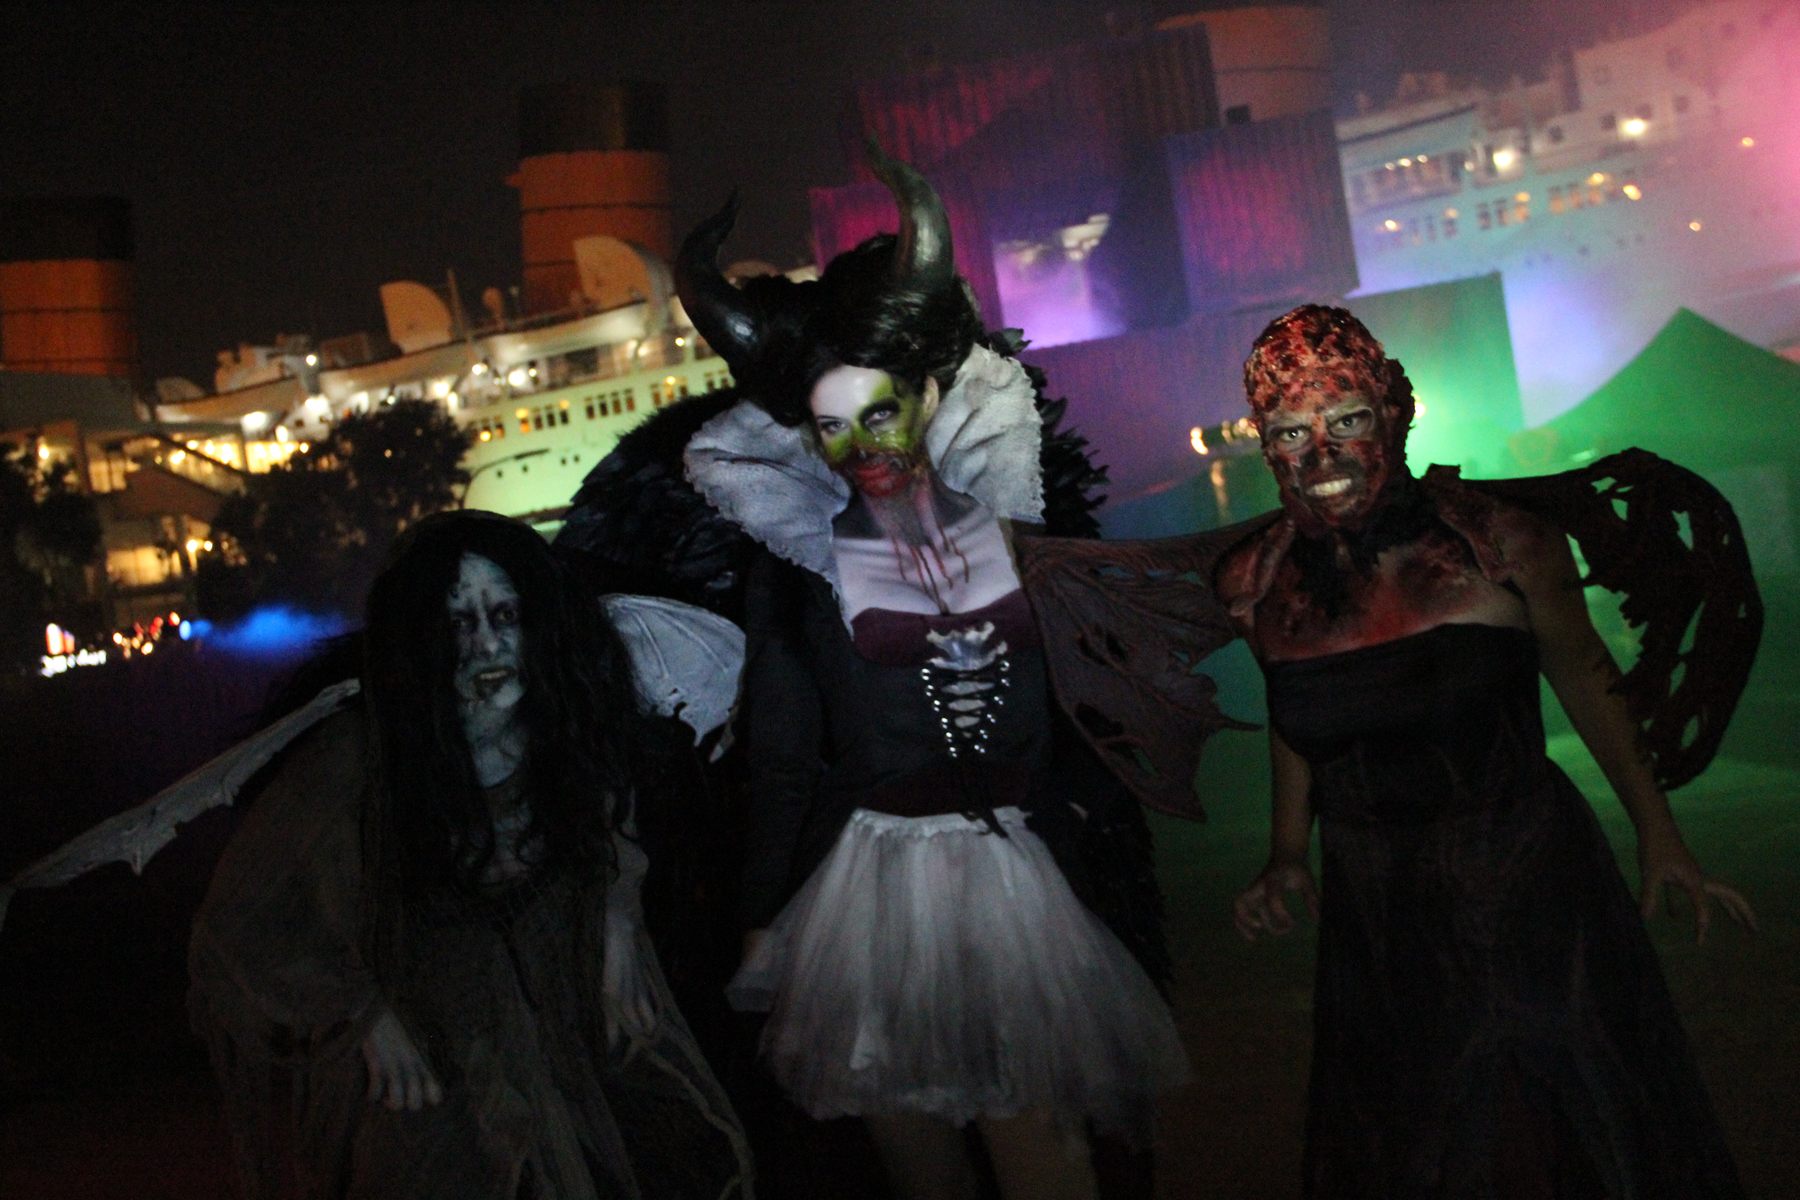 queen mary dark harbor: halloween horror on the high seas!